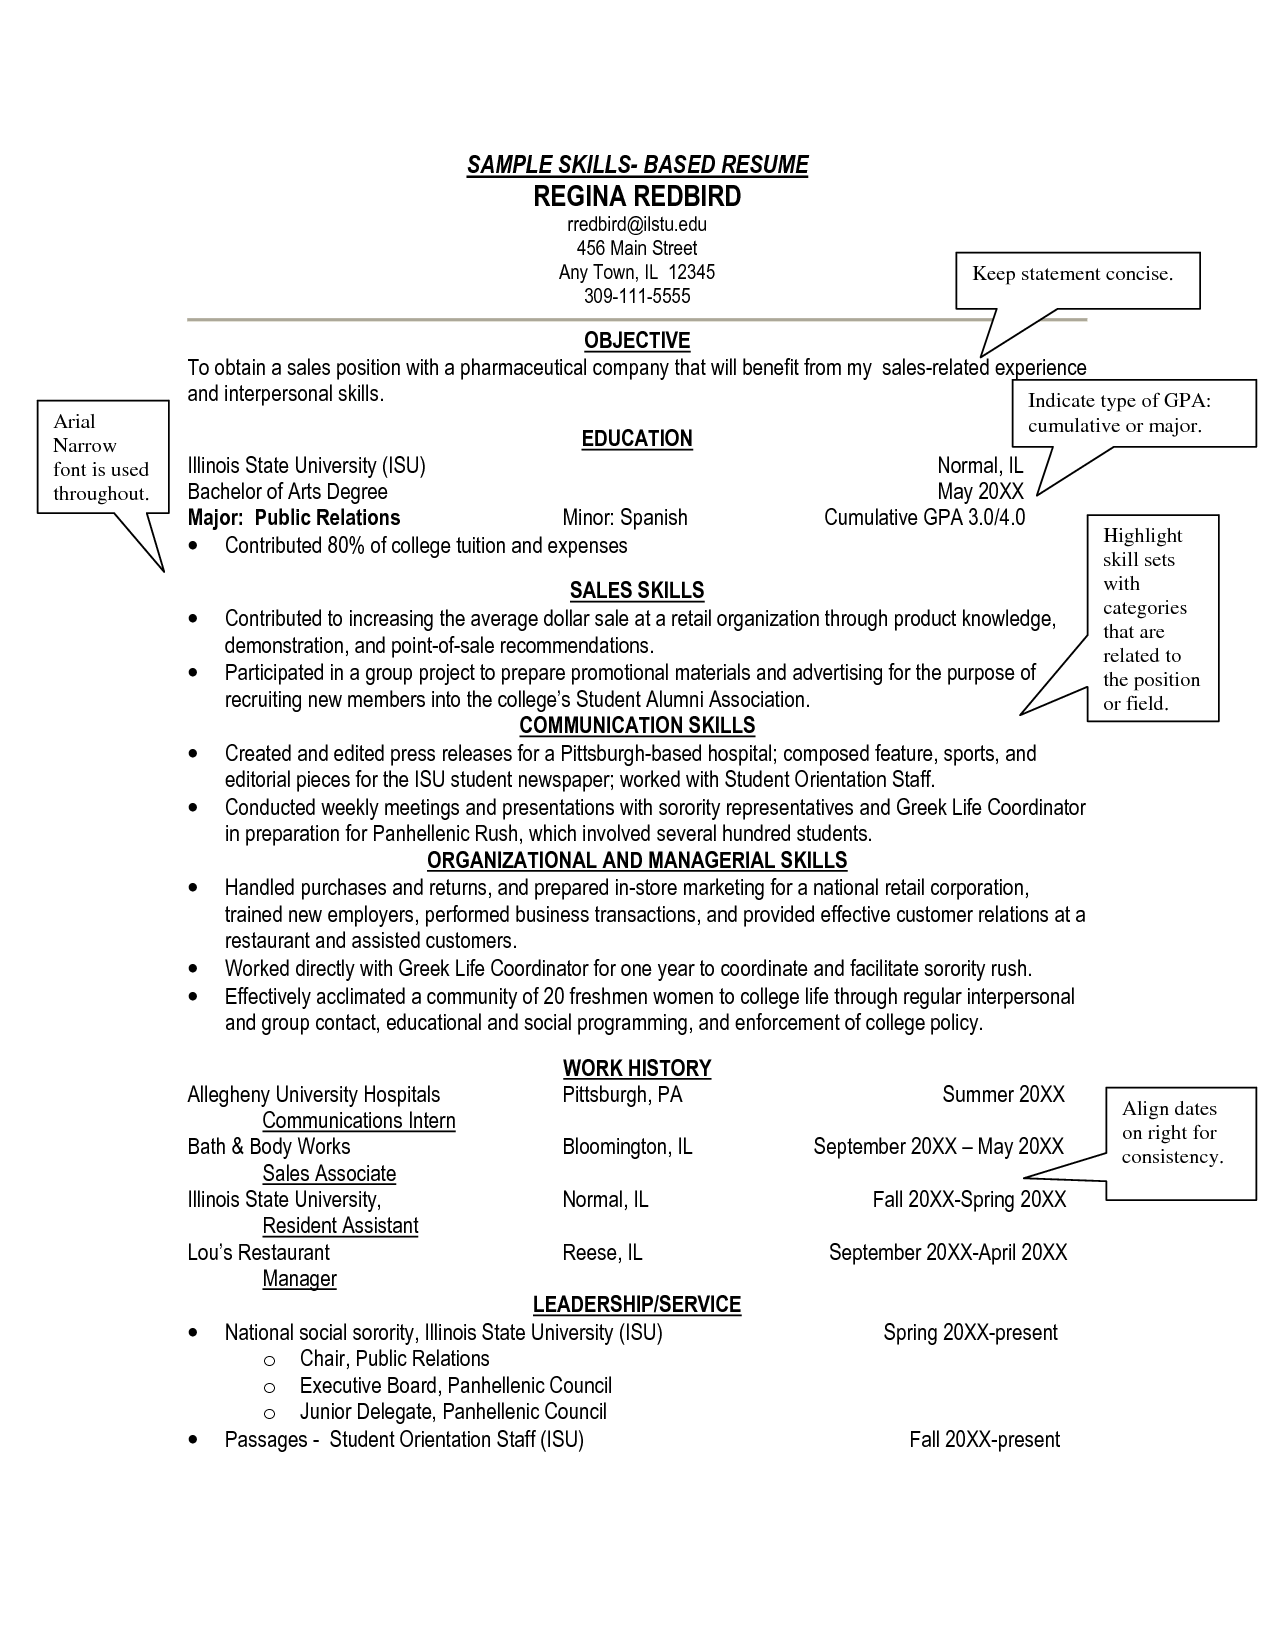 Sample Resume Skills Based Resume - http://www.resumecareer.info ...